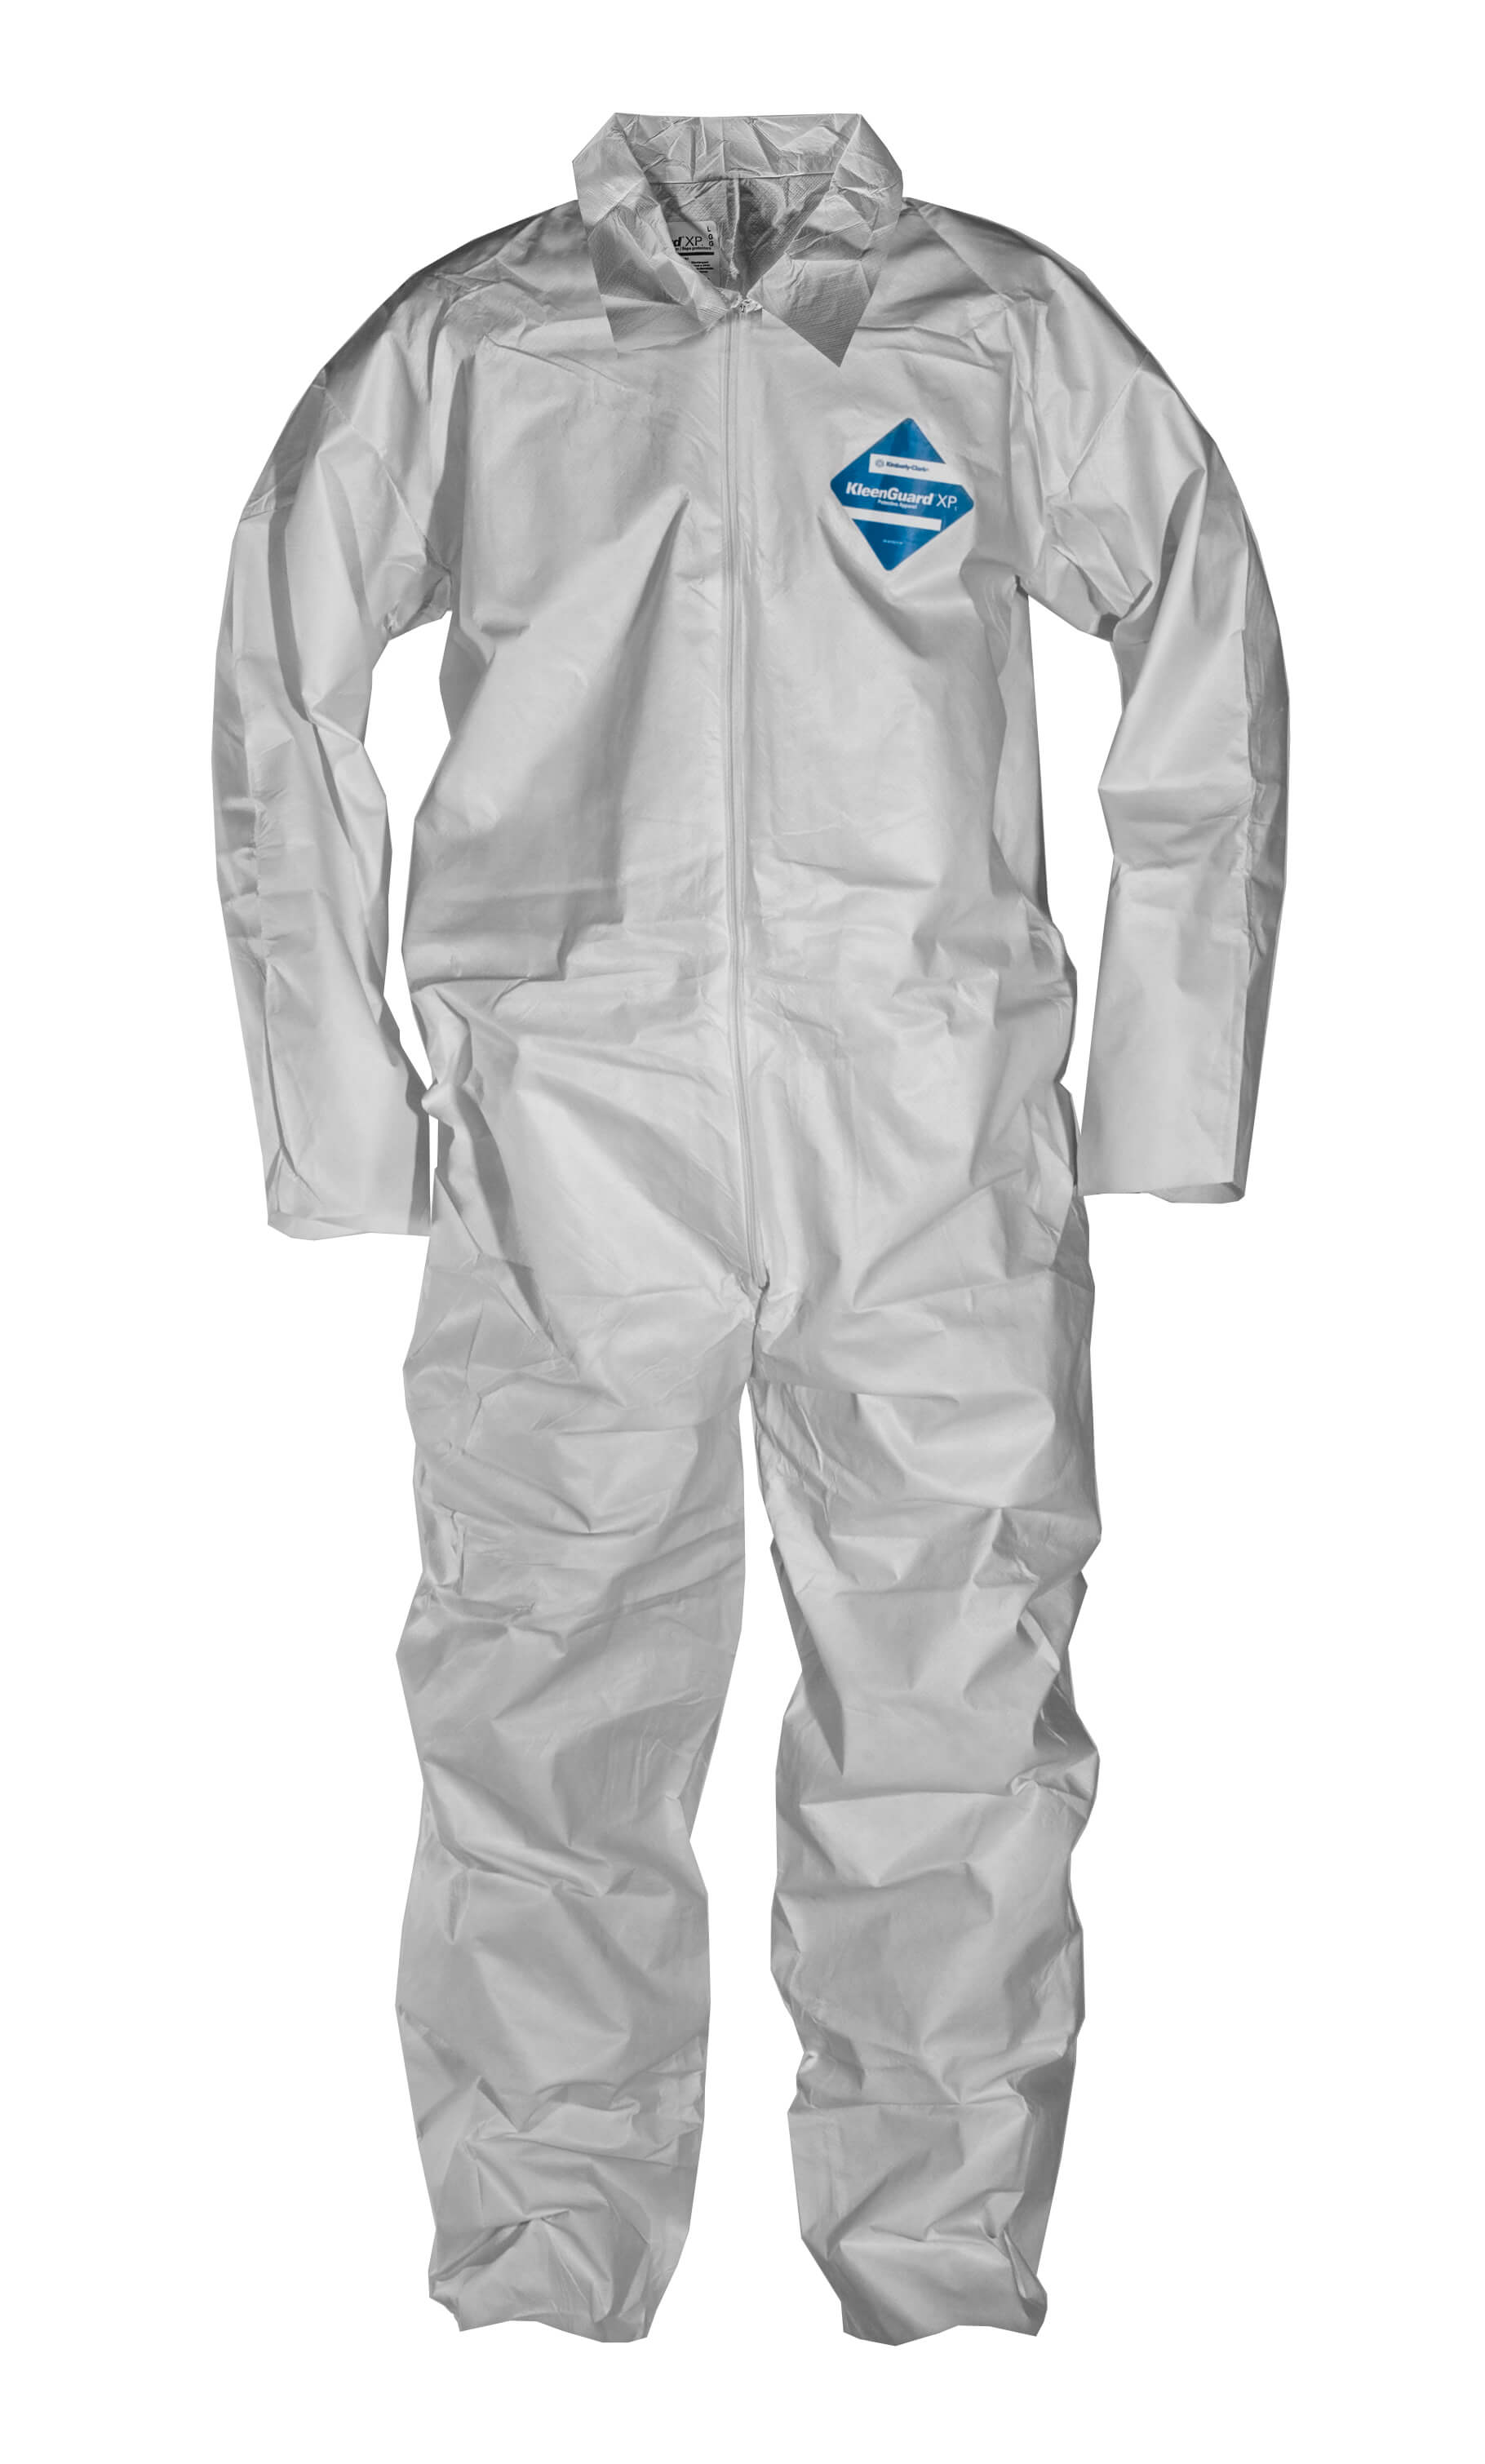 Coverall with zipper front